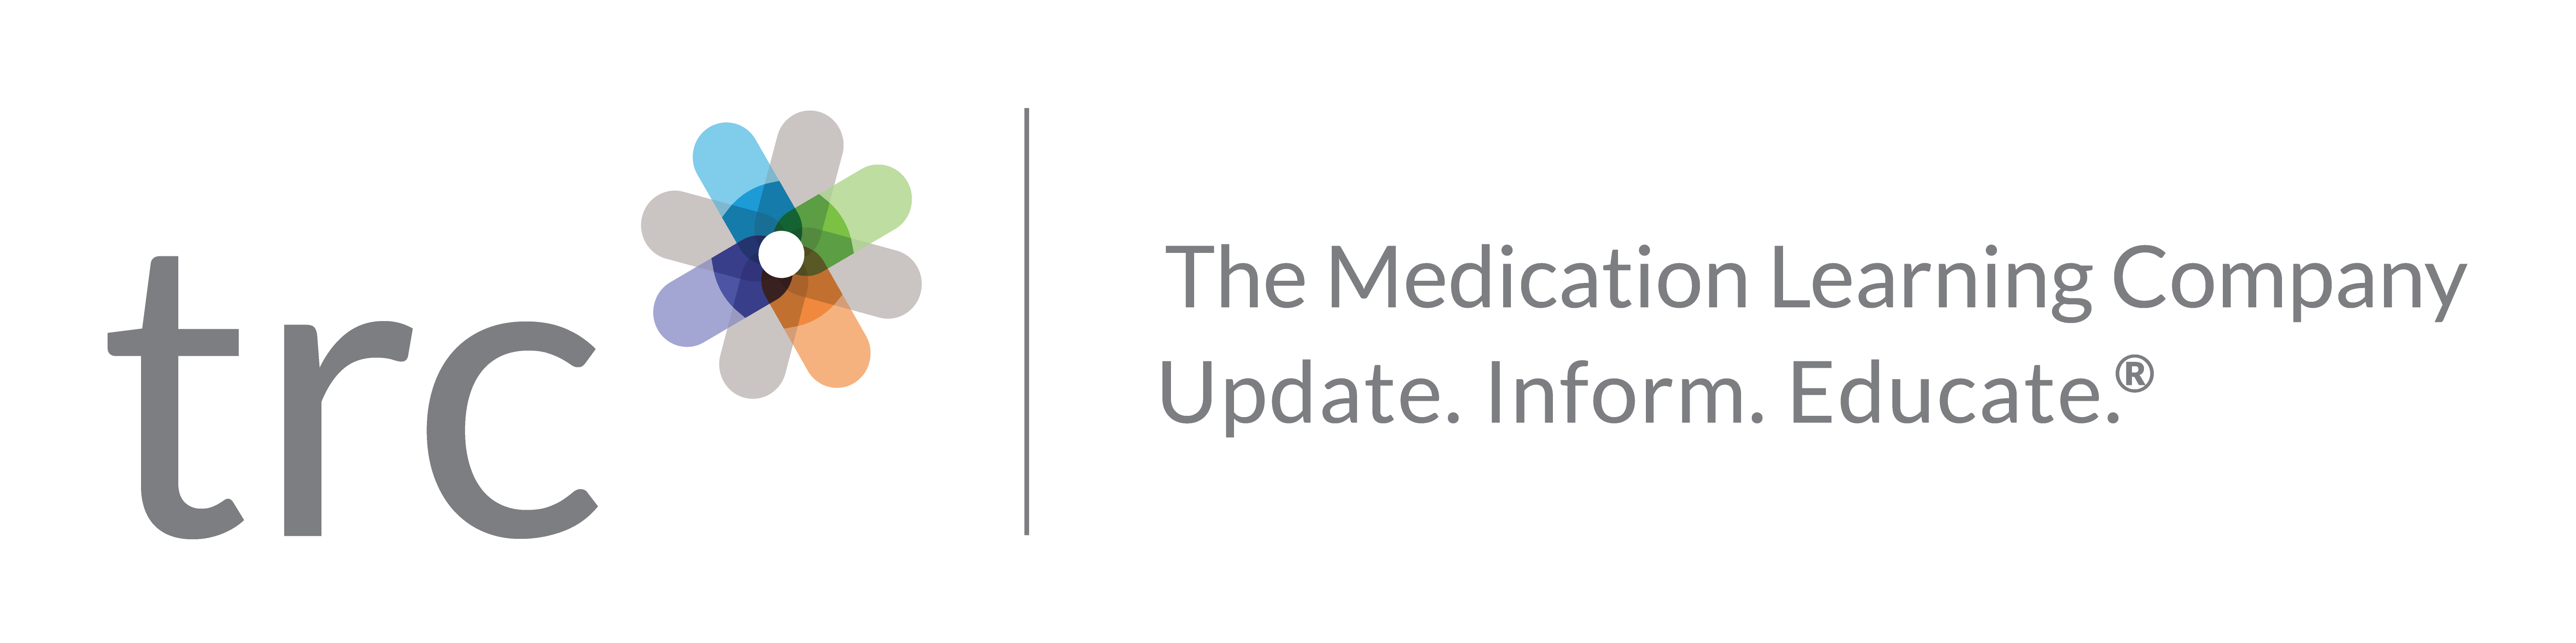 TRC | The Medication Learning Company | Update. Inform. Educate.